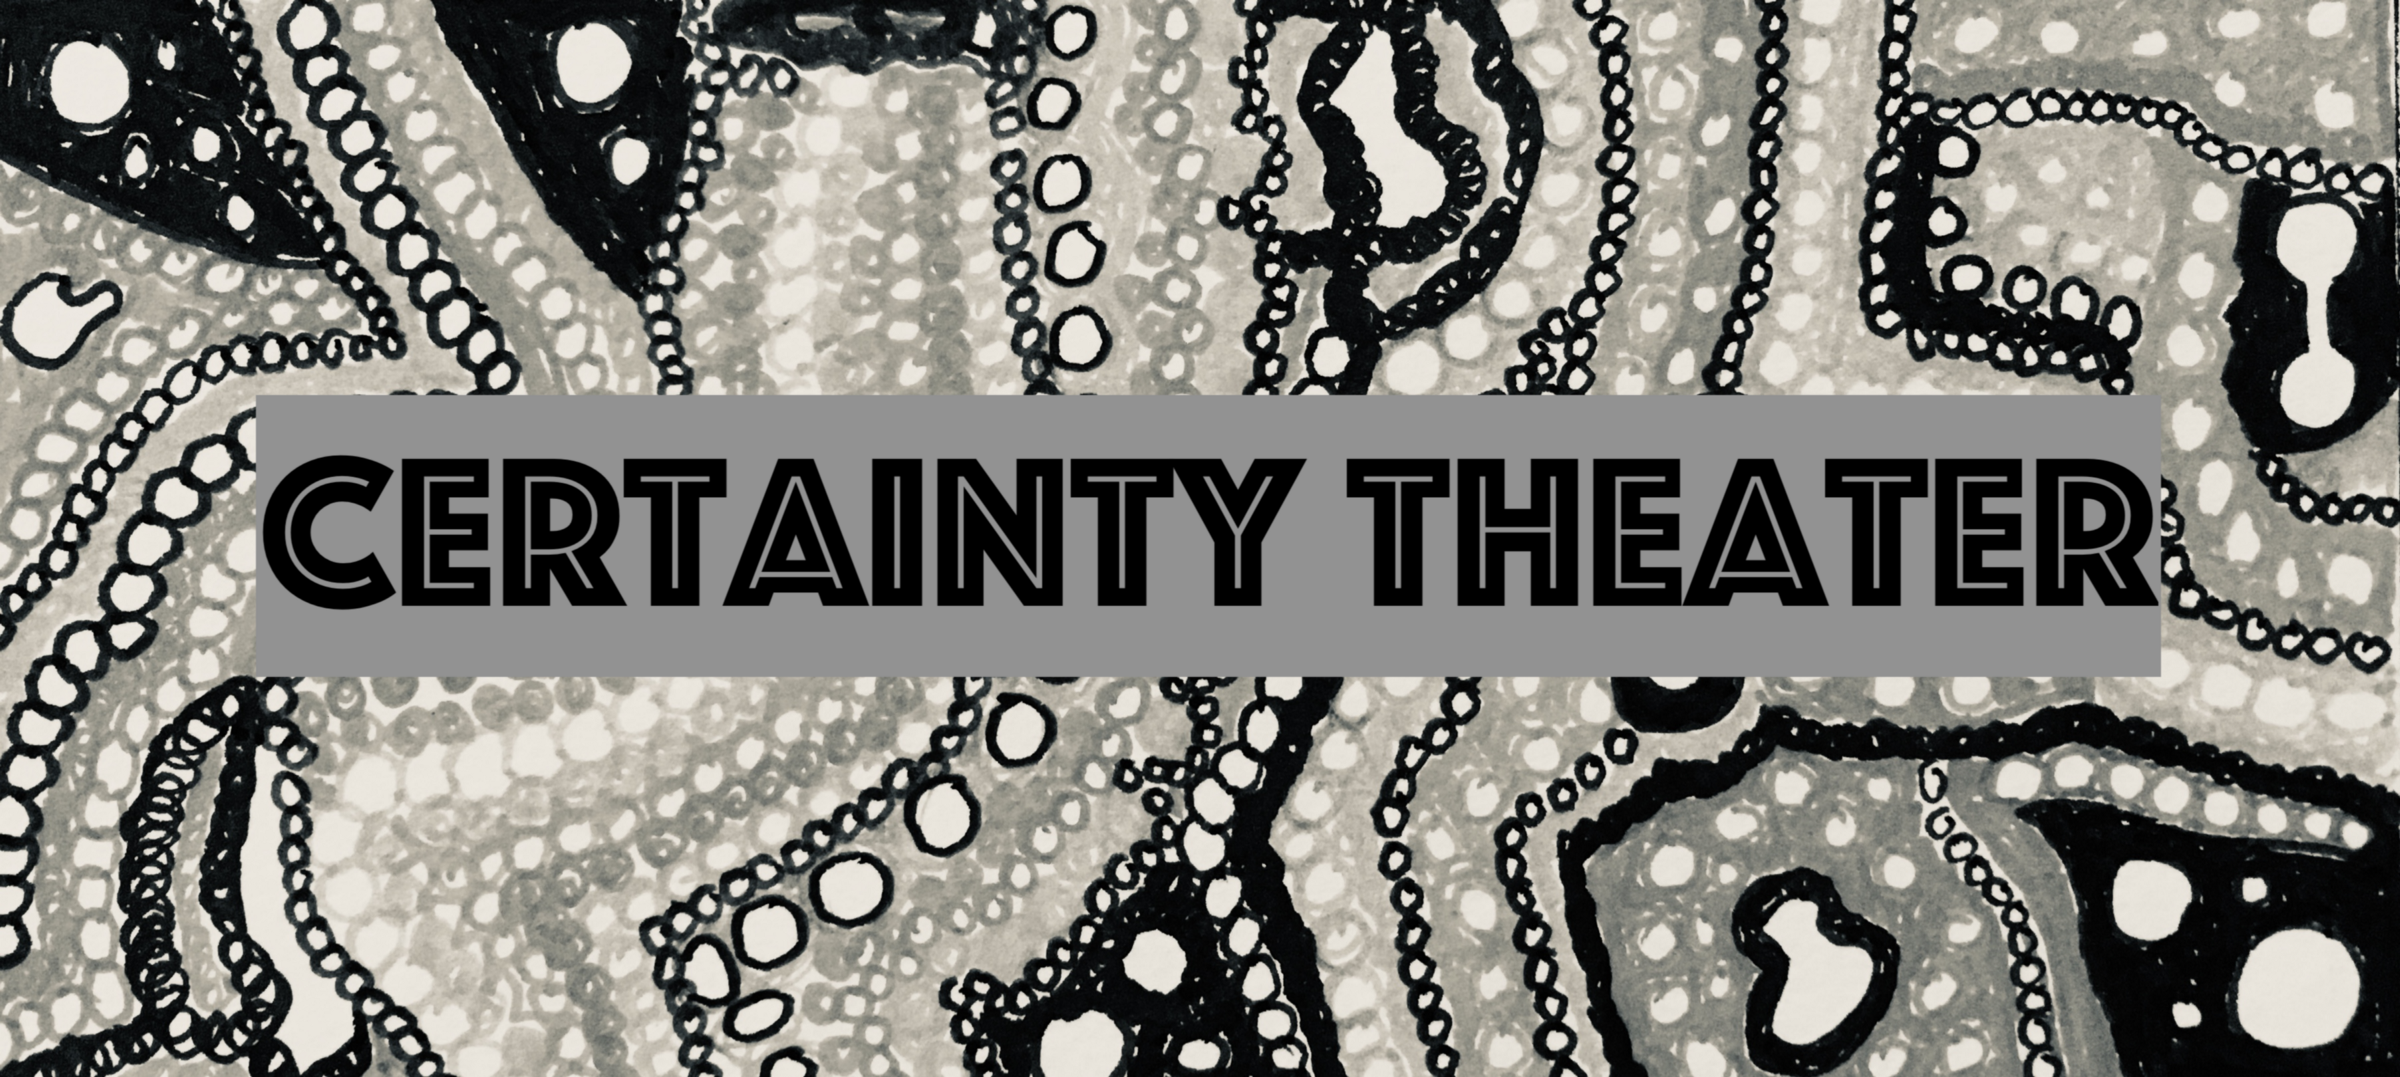 /certainty-theater-43f18c278cf9 feature image